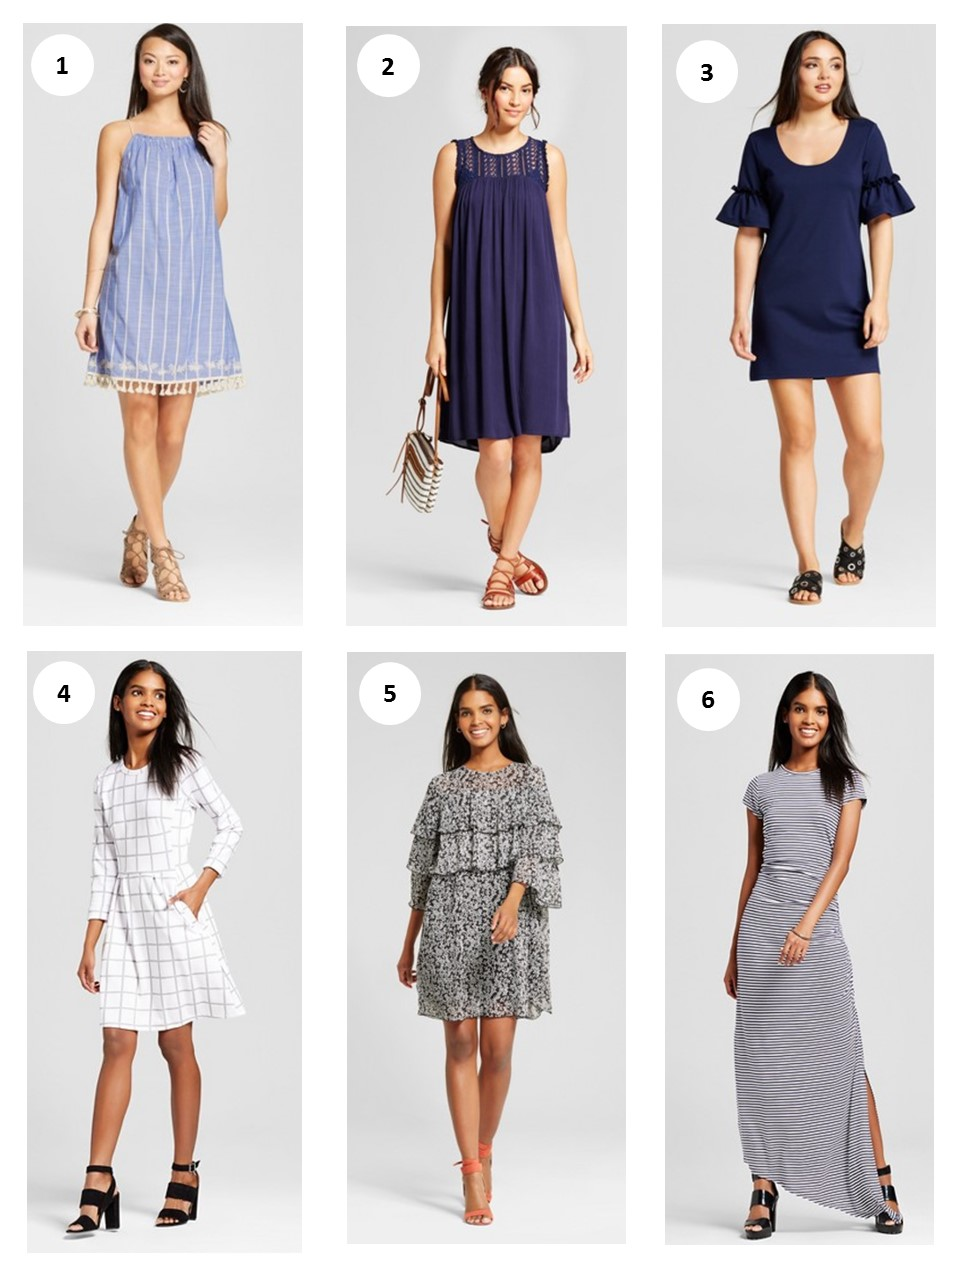 14 march summer day dresses